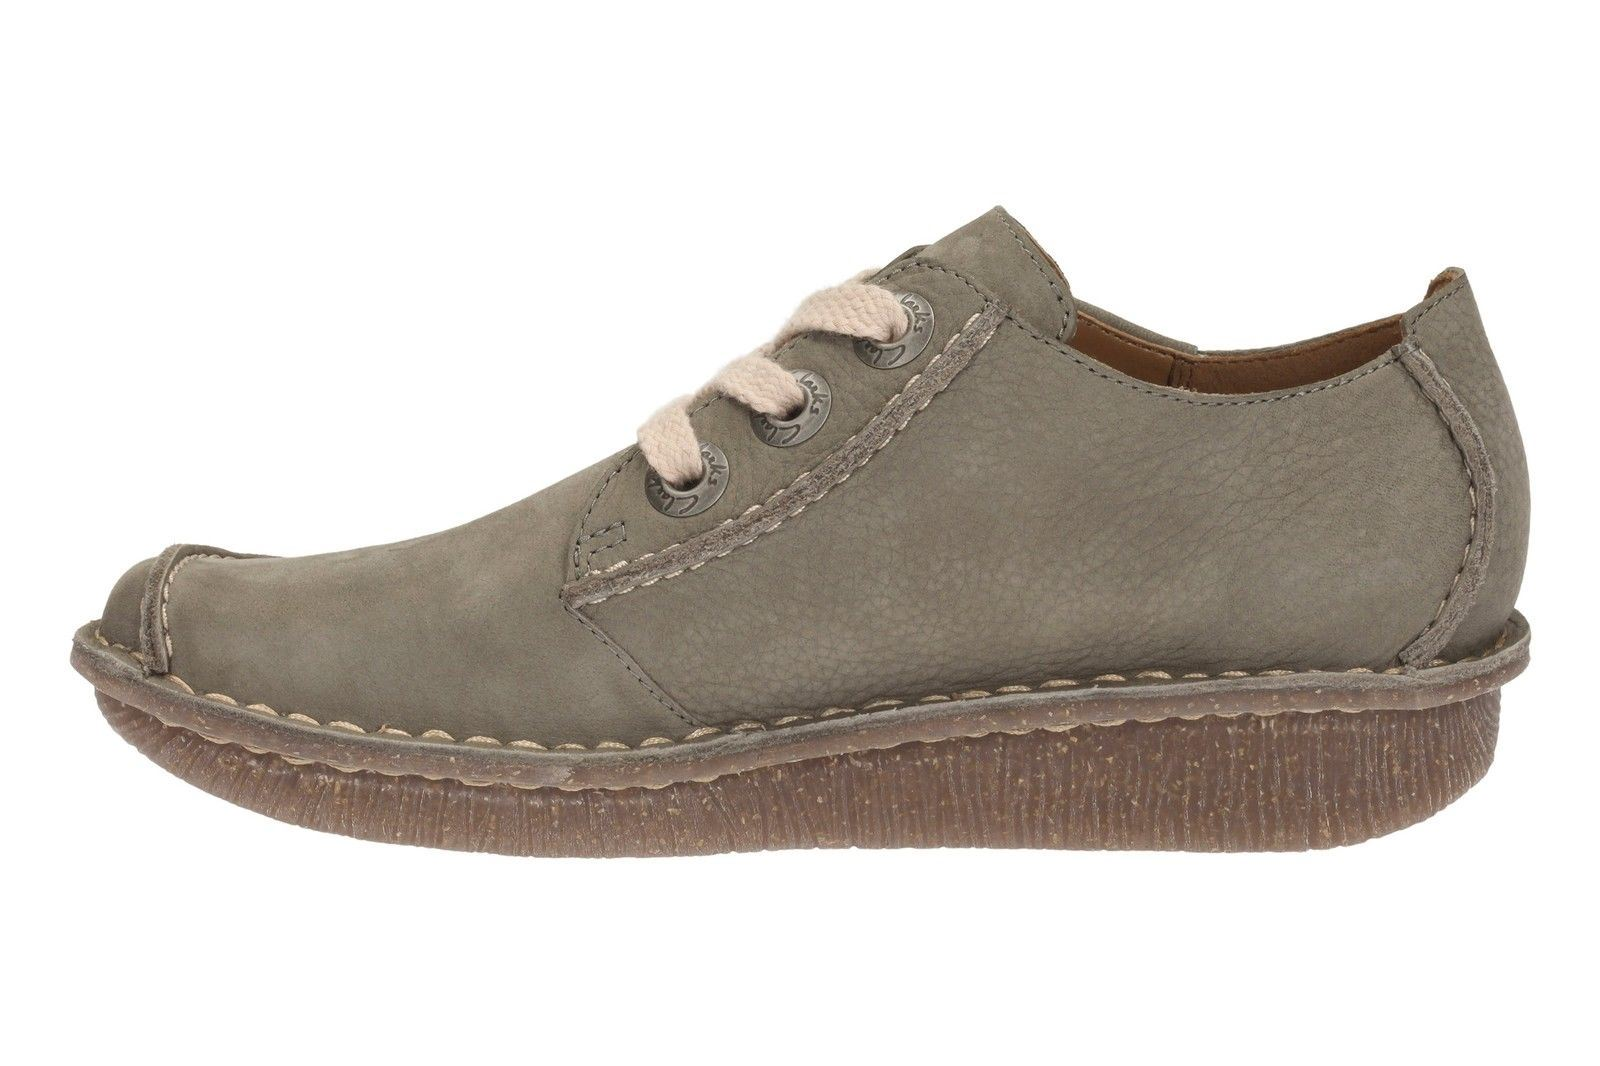 Find Clarks Funny Dream Shoes